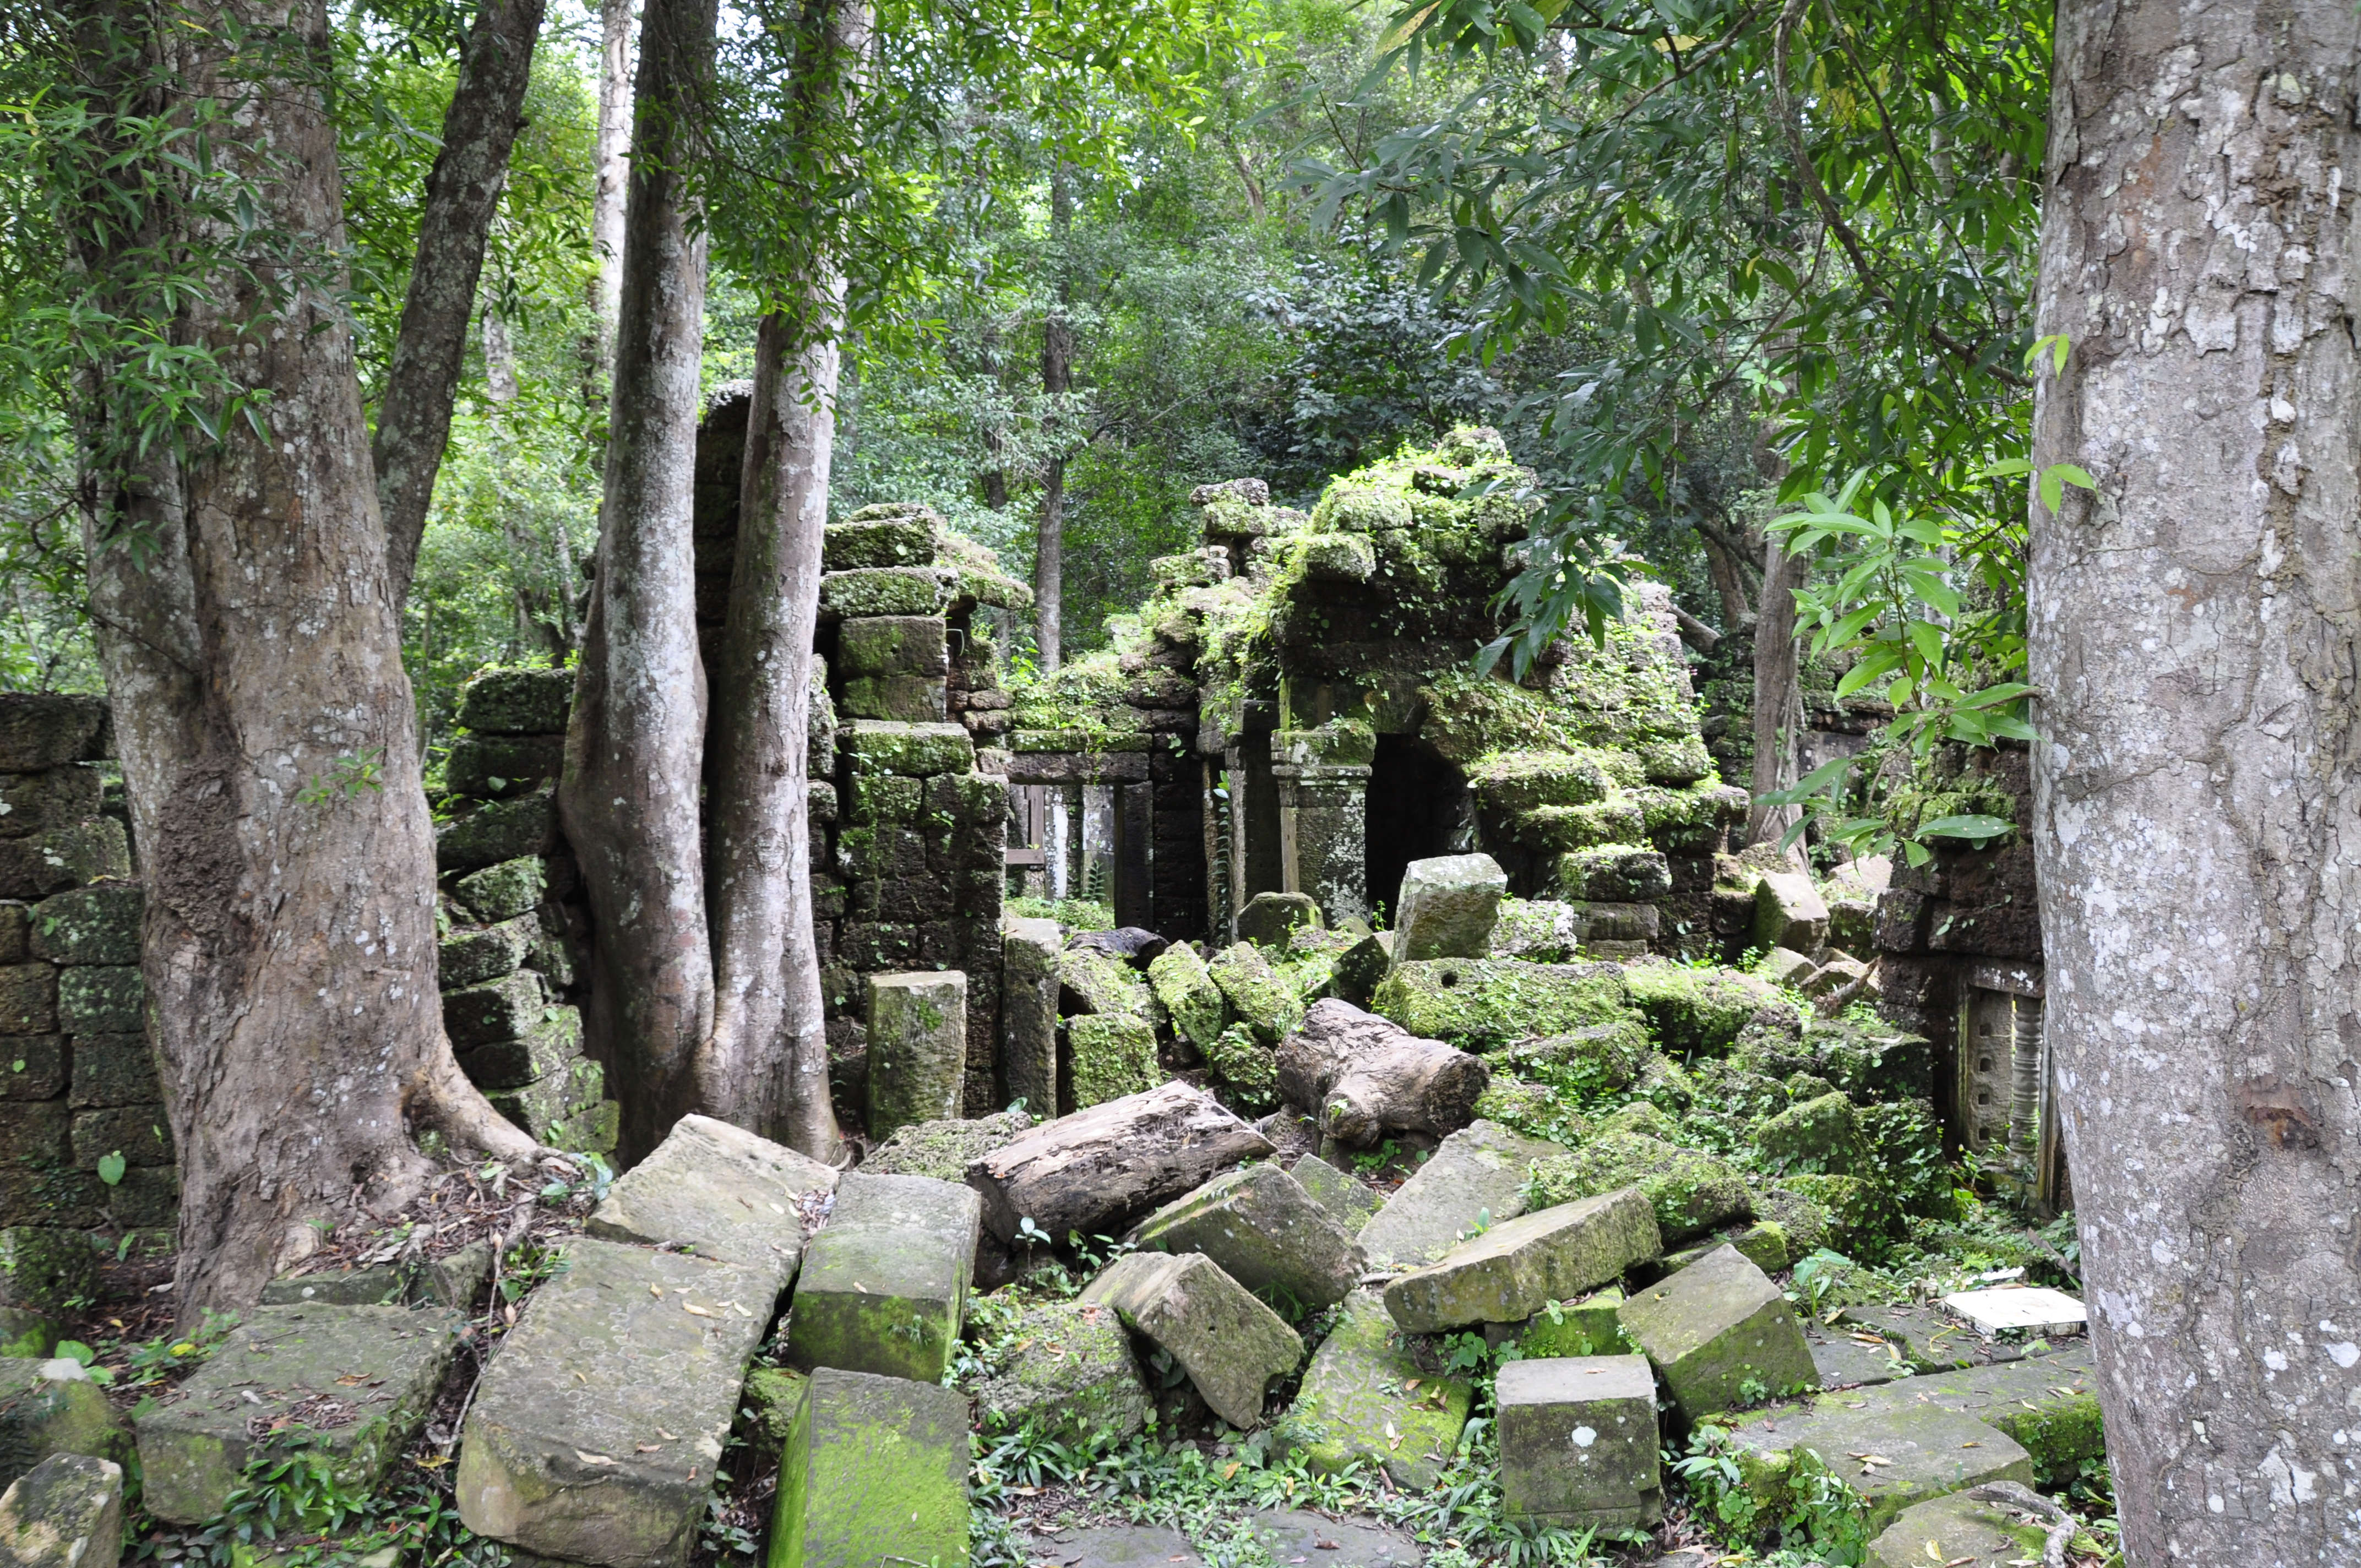 11817 additionally Phnom Kulen National Park also 1451422347 also Peaks of Otter additionally Mexico Region 220326898. on thought map